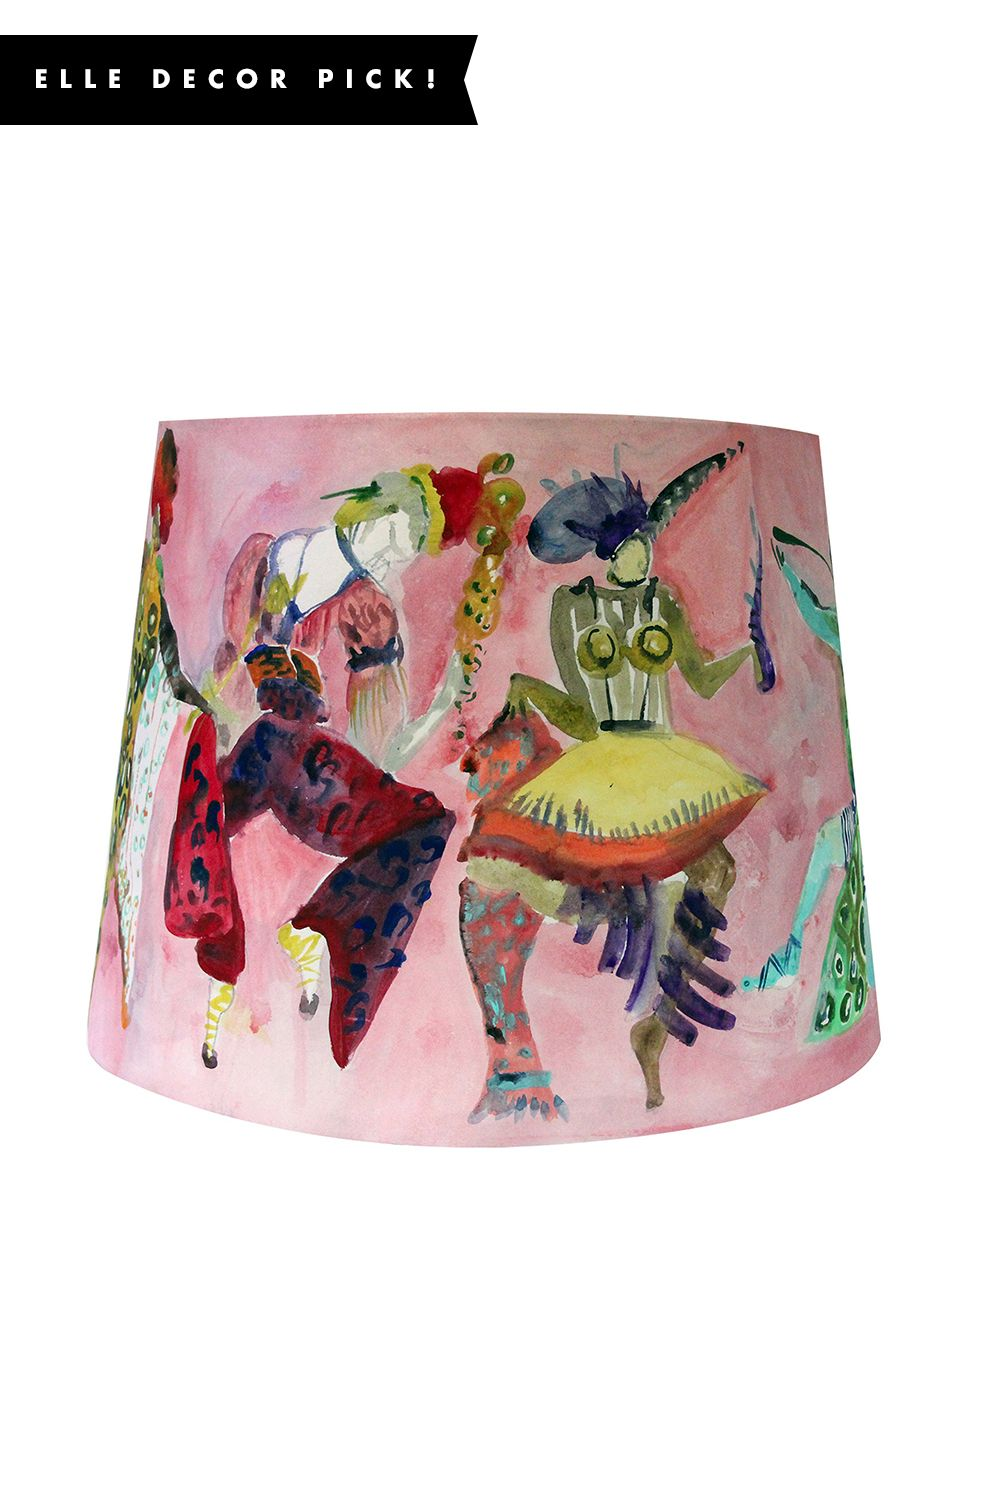 """<p>""""A painterly party scene, rendered here on wallpapered lamp shades,is the perfect way to kick off the year-end entertaining season.""""</p><p><em data-redactor-tag=""""em"""" data-verified=""""redactor"""">SHOP NOW: Voutsa Ballet Russes Lampshade, $650; <a href=""""https://www.panierhome.com/makers-1/ballet-russes-pink-lamp-shade"""" target=""""_blank"""" data-tracking-id=""""recirc-text-link"""">panierhome.com</a></em></p>"""